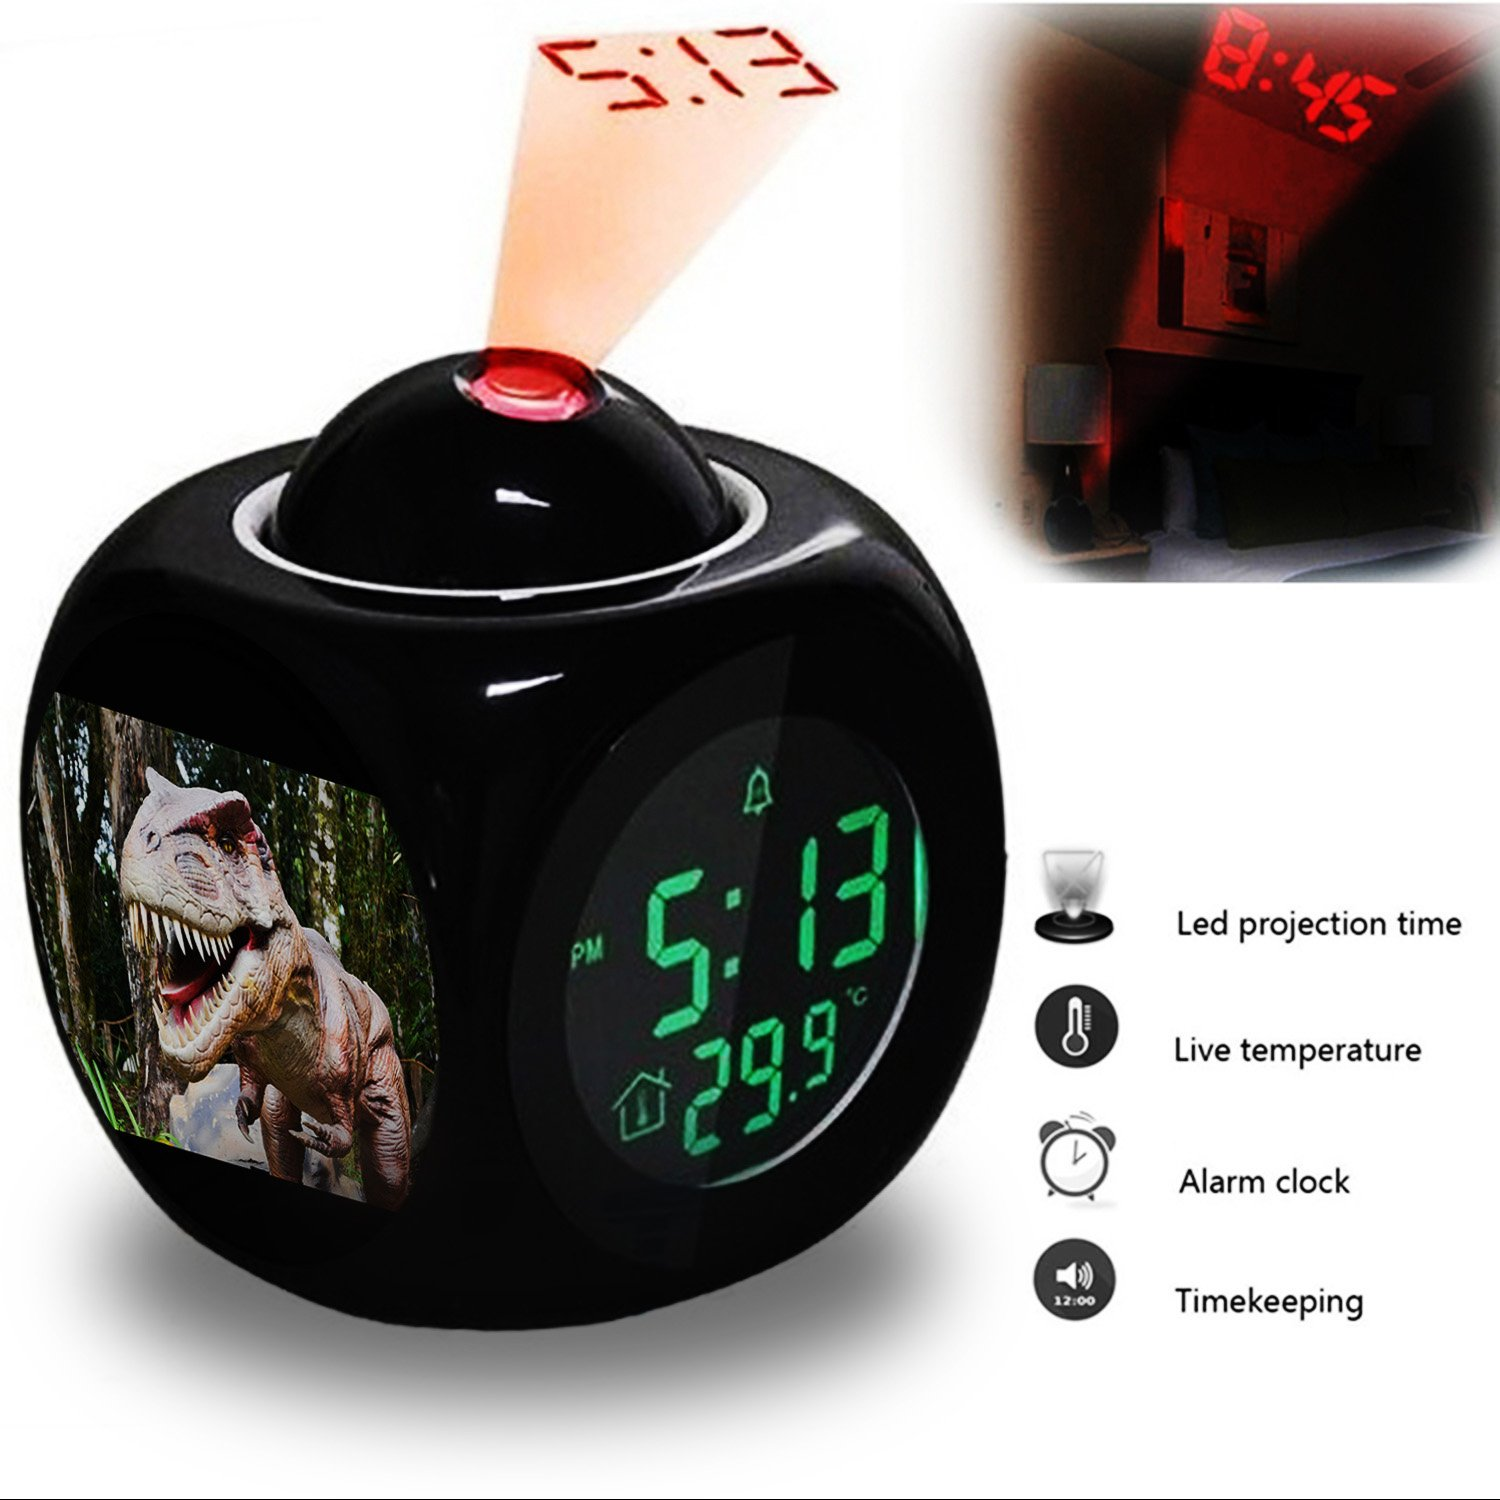 Projection Alarm Clock Wake Up Bedroom with Data and Temperature Display Talking Function, LED Wall/Ceiling Projection, Dinosaur-212.319_Dinosaur, Robot, Jurassic Girlsight